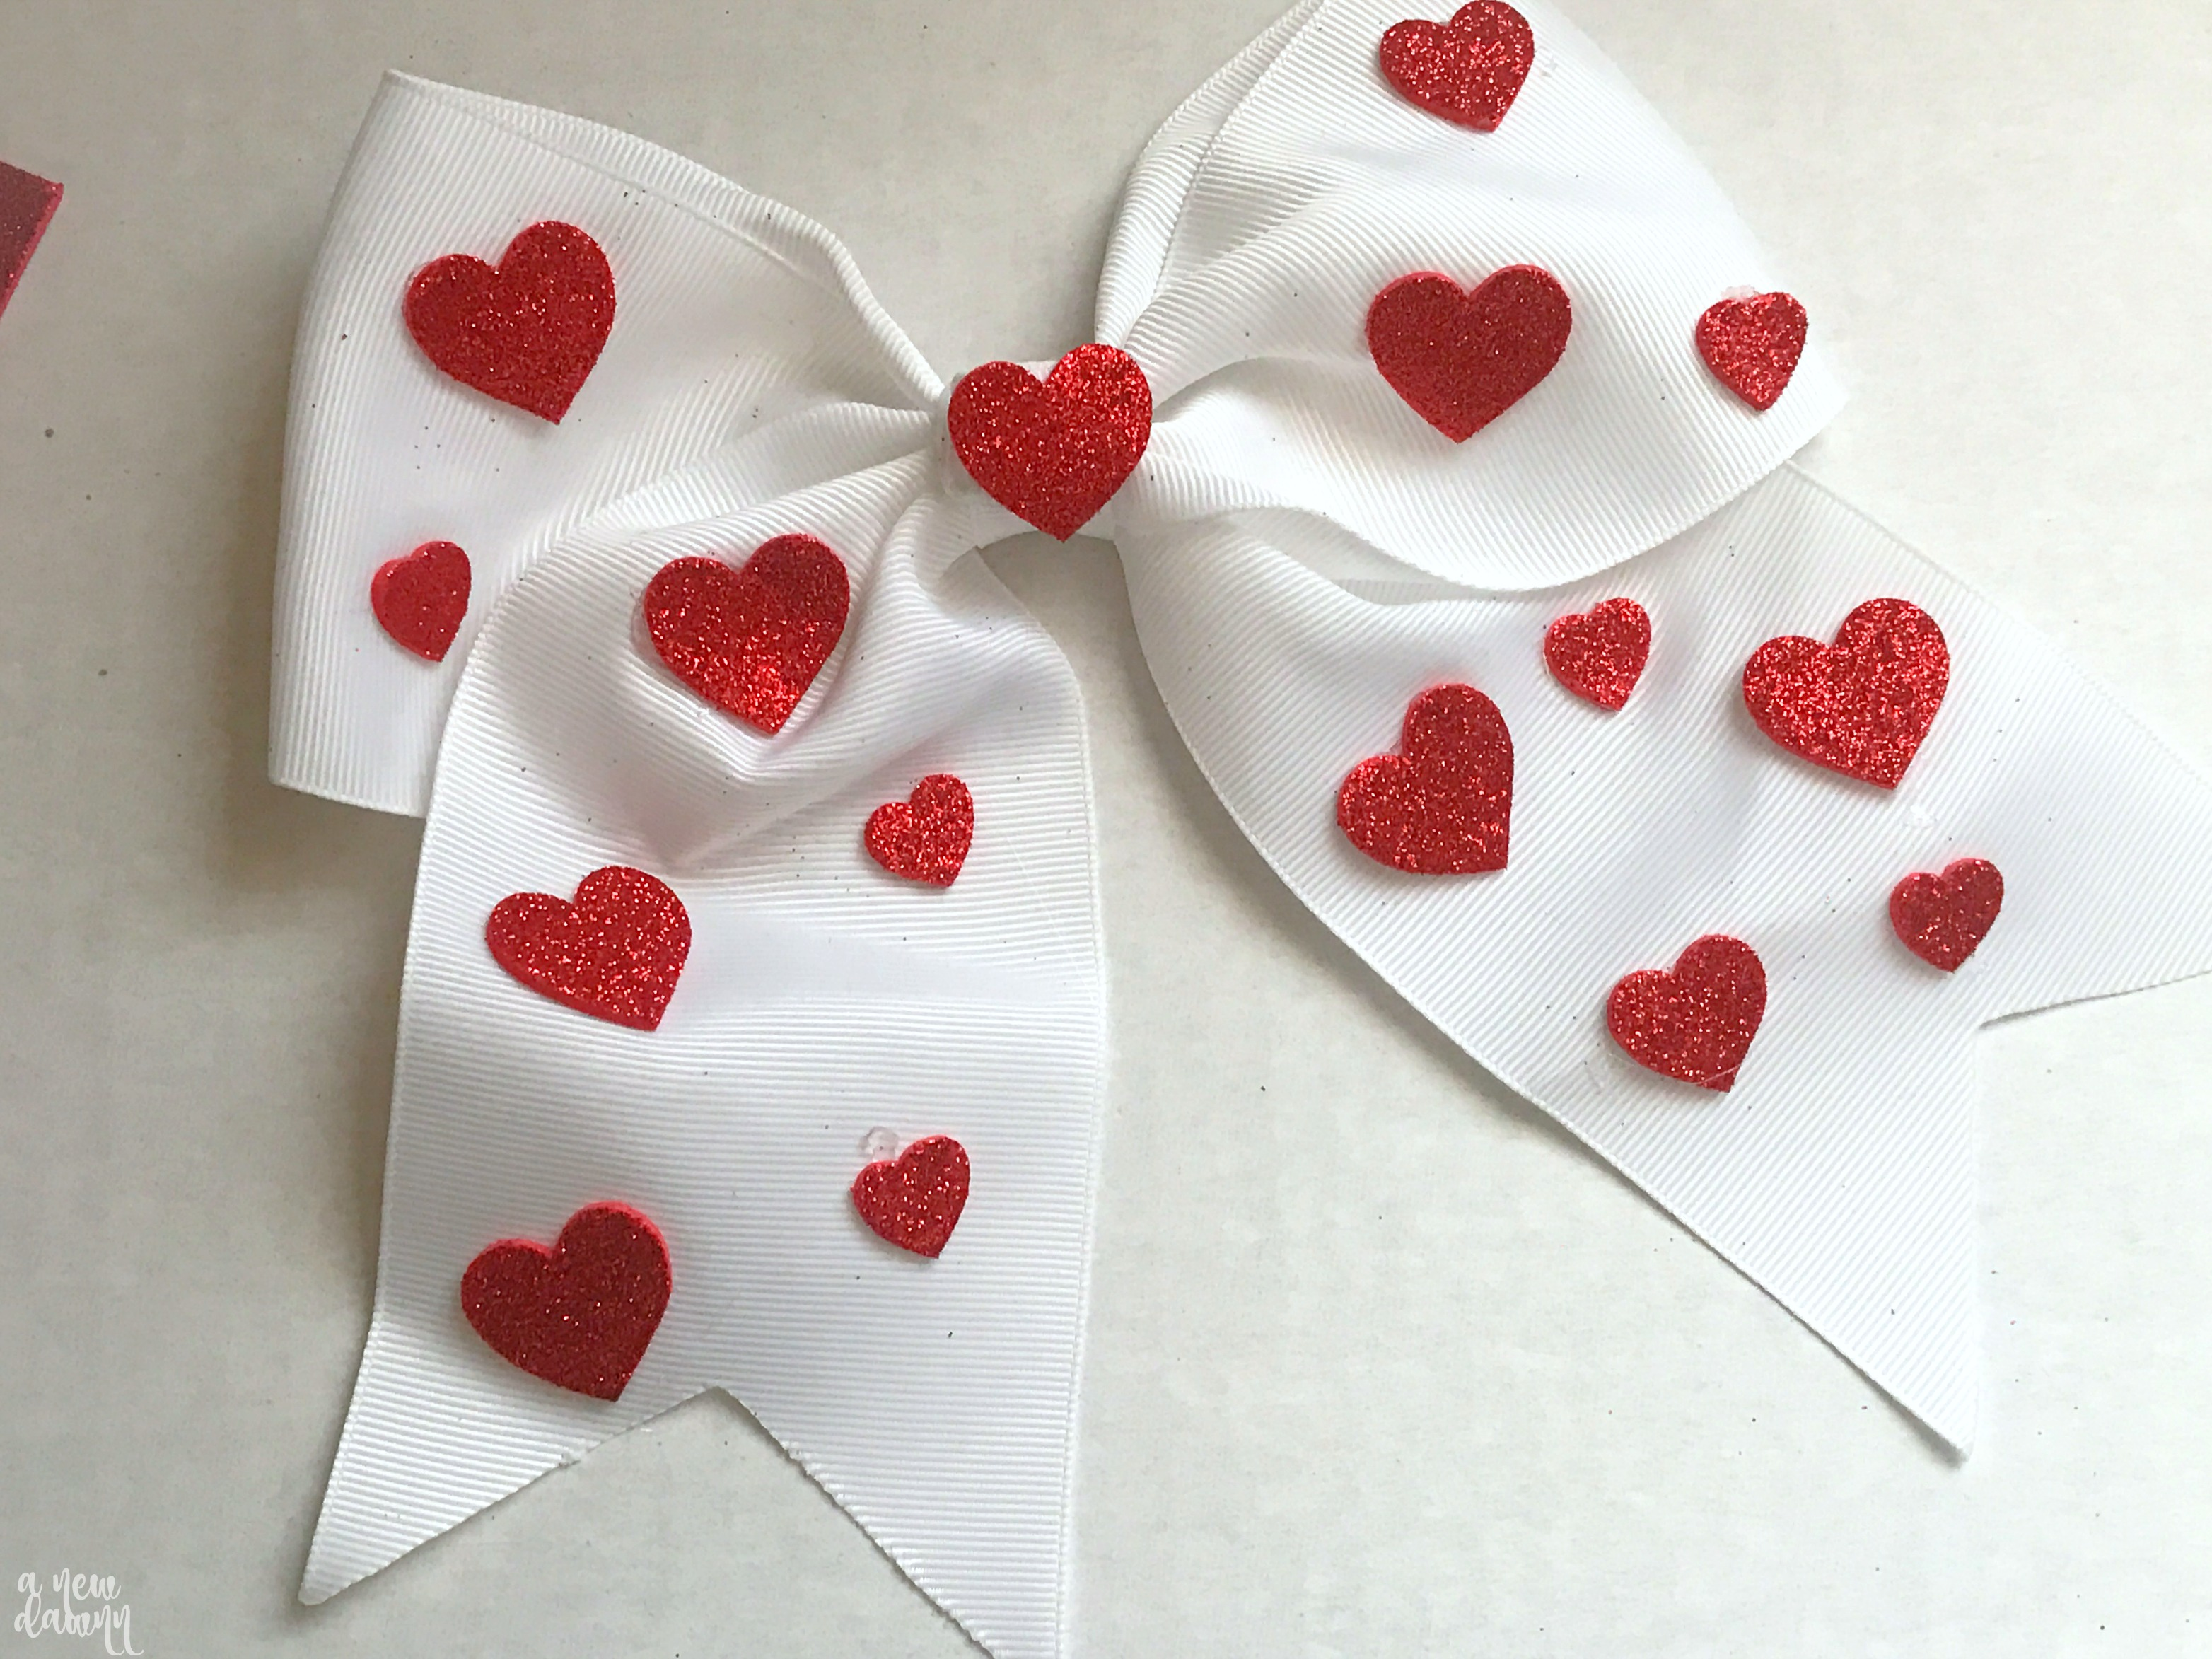 DIY Heart Hair Bow inspired by Amazon's Creative Galaxy